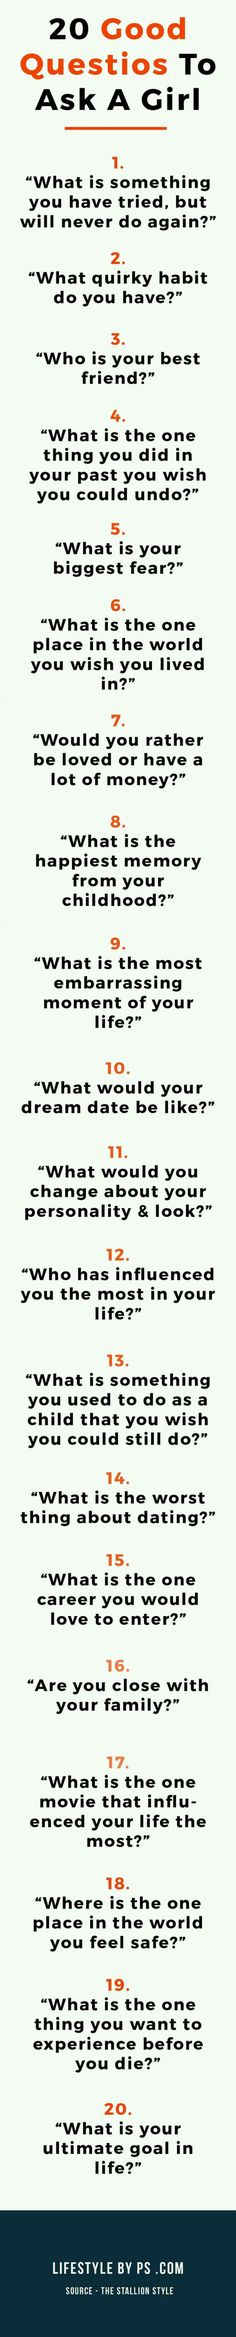 Questions To Ask A Girl You Want To Impress 20 Good Questions To Ask A Girl - Learn how I made it to in one months with e-commerce!<br> Look smart and impress a girl you like. Questions For Girls, Fun Questions To Ask, This Or That Questions, Flirting Tips For Girls, Flirting Quotes For Him, Conversation Starter Questions, Conversation Topics, Flirting Texts, Flirting Humor